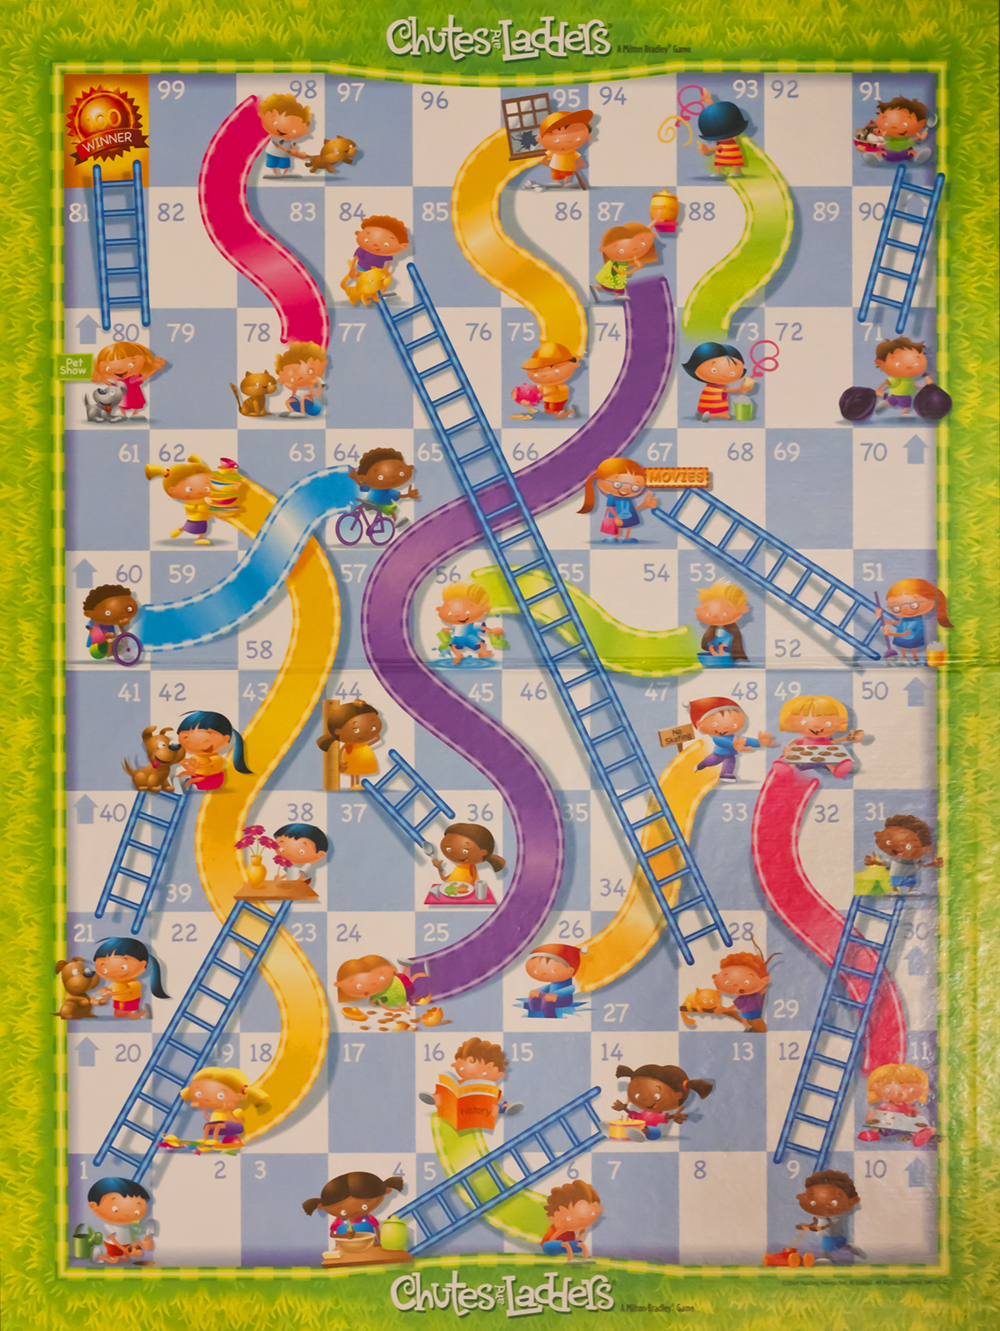 Chutes And Ladders Board Template Chutes and ladders is an